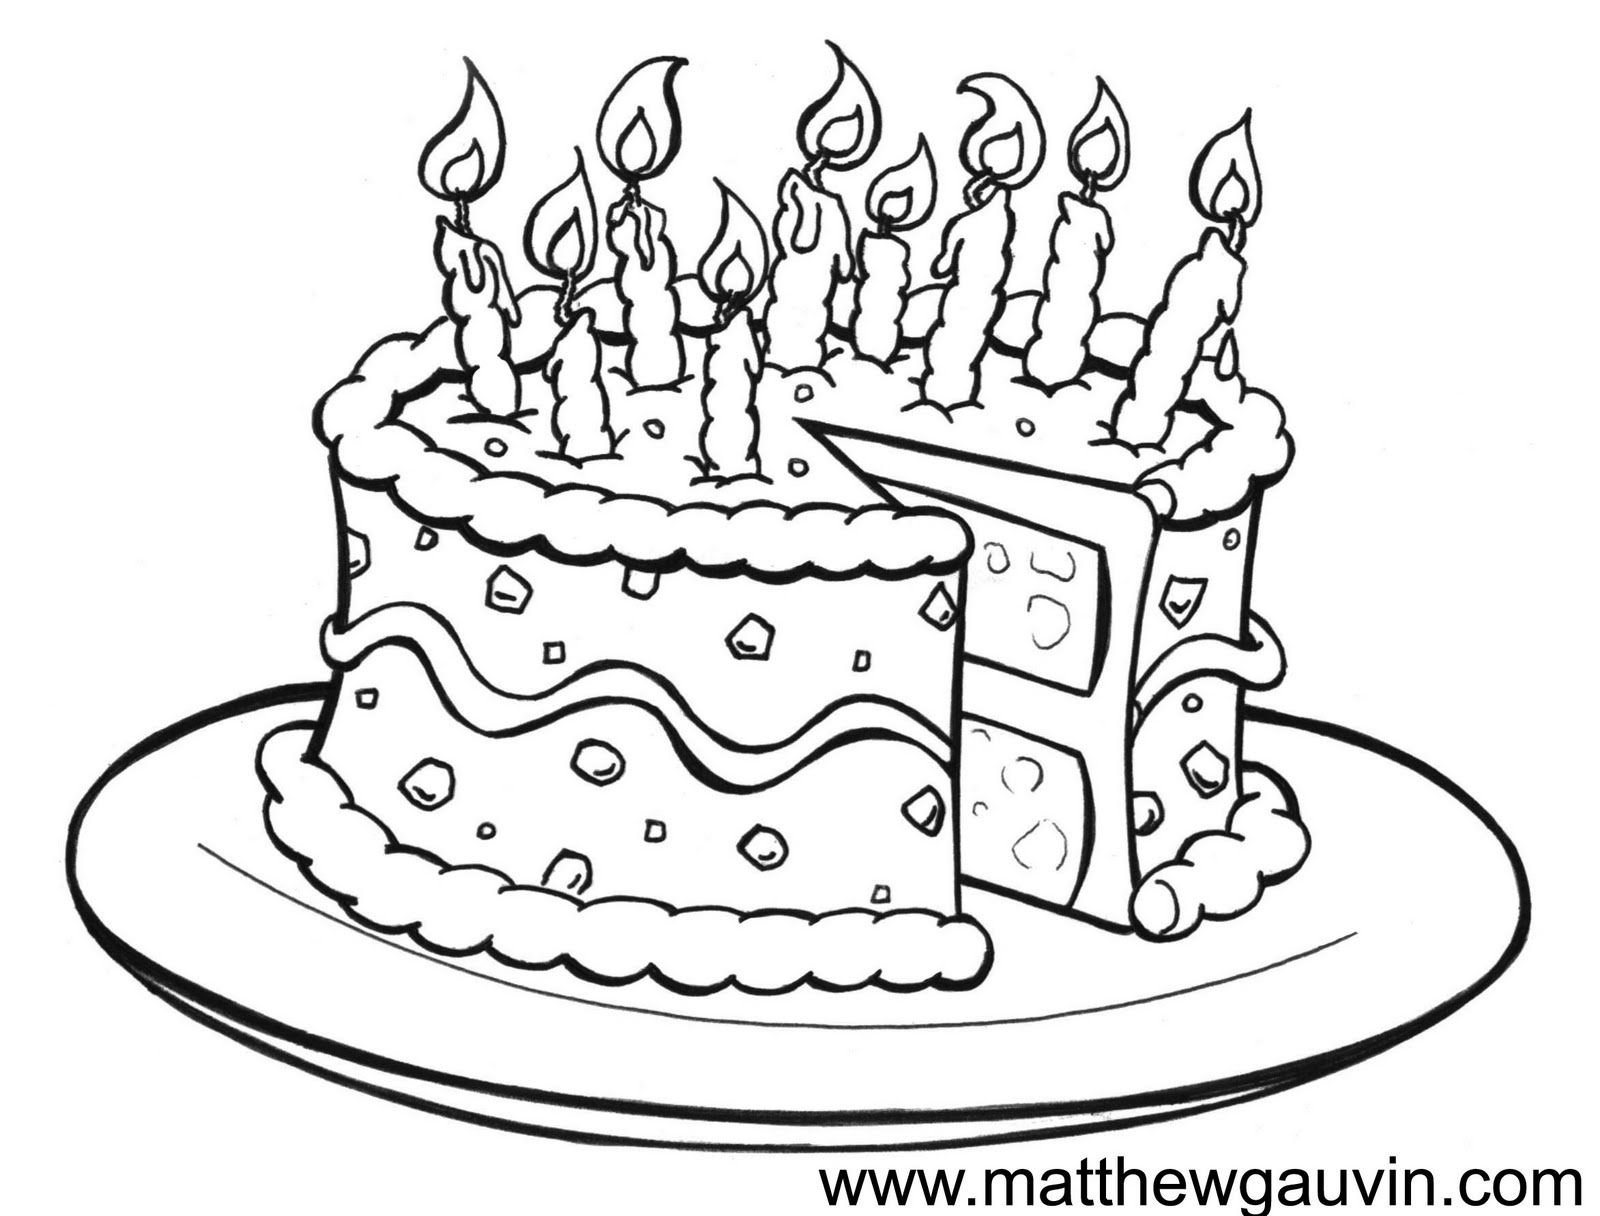 Birthday Drawing Google Search Birthday Coloring Pages Happy Birthday Coloring Pages Birthday Cake With Candles